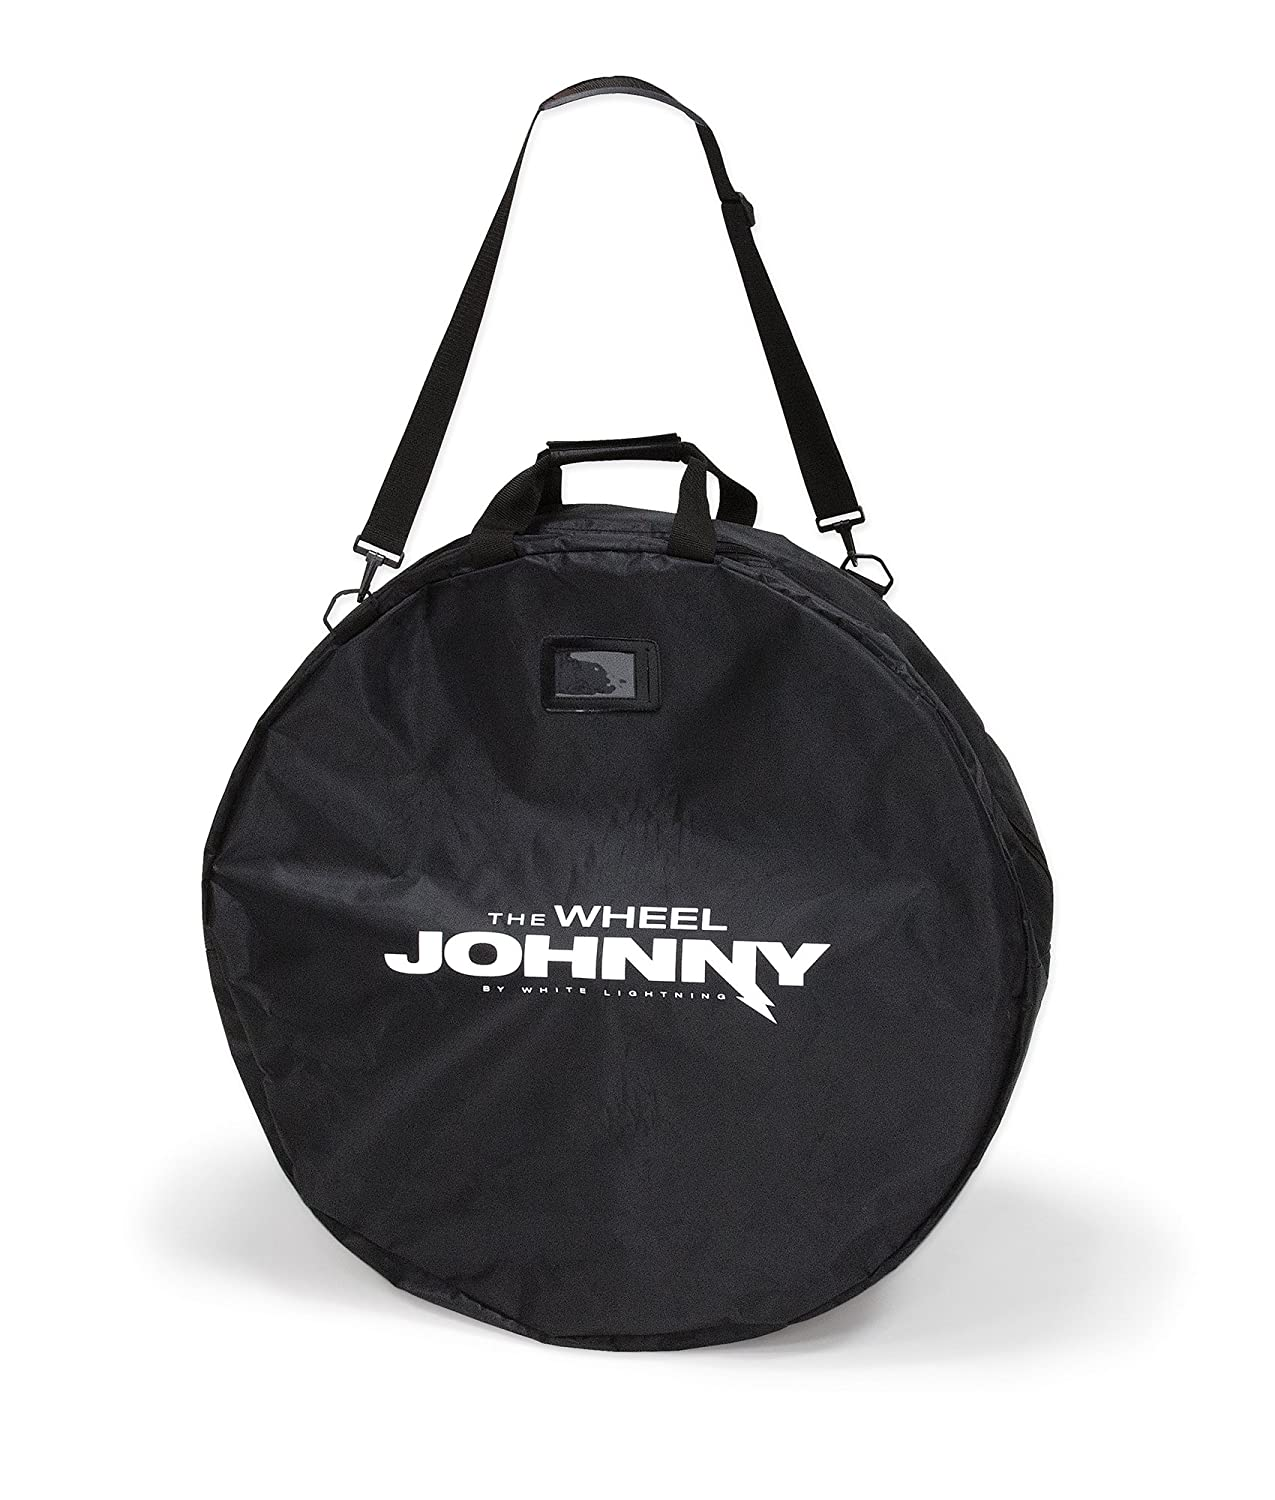 White Lightning Wheel Johnny Protective Cover and Carry Case by White Lightning   B009NN6D24